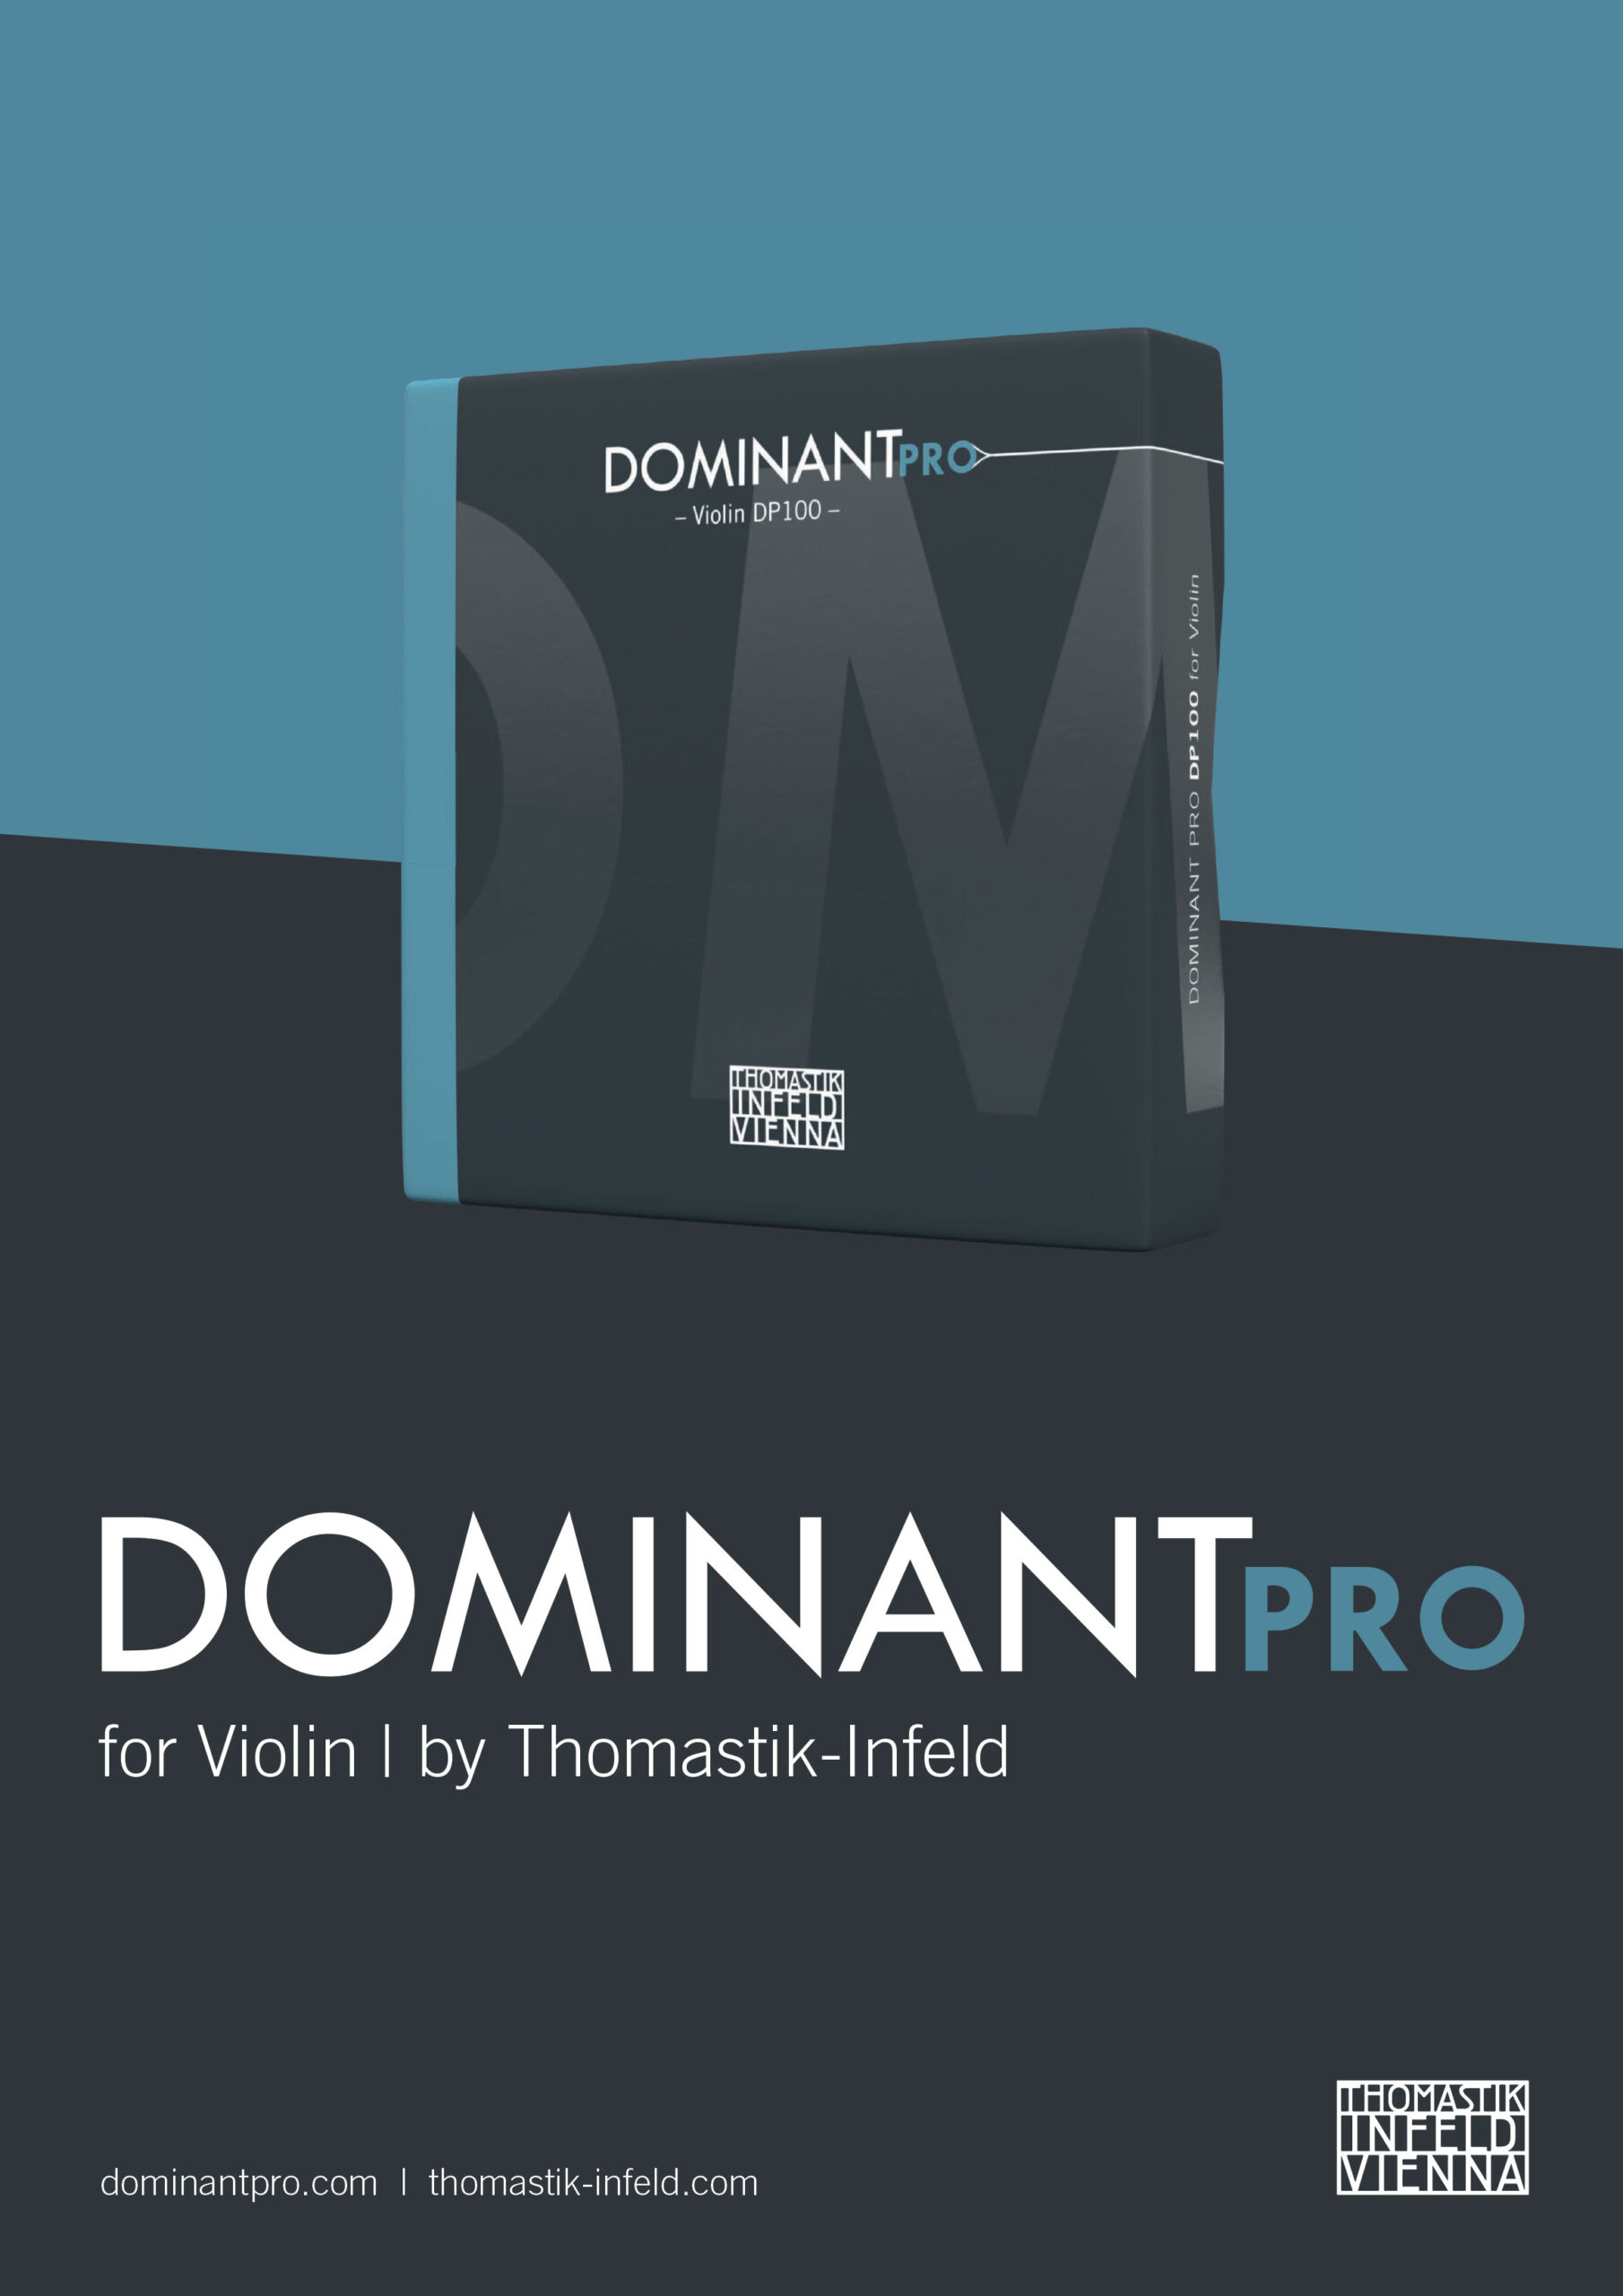 NEW Dominant Pro Violin Strings now available at Violin Outlet